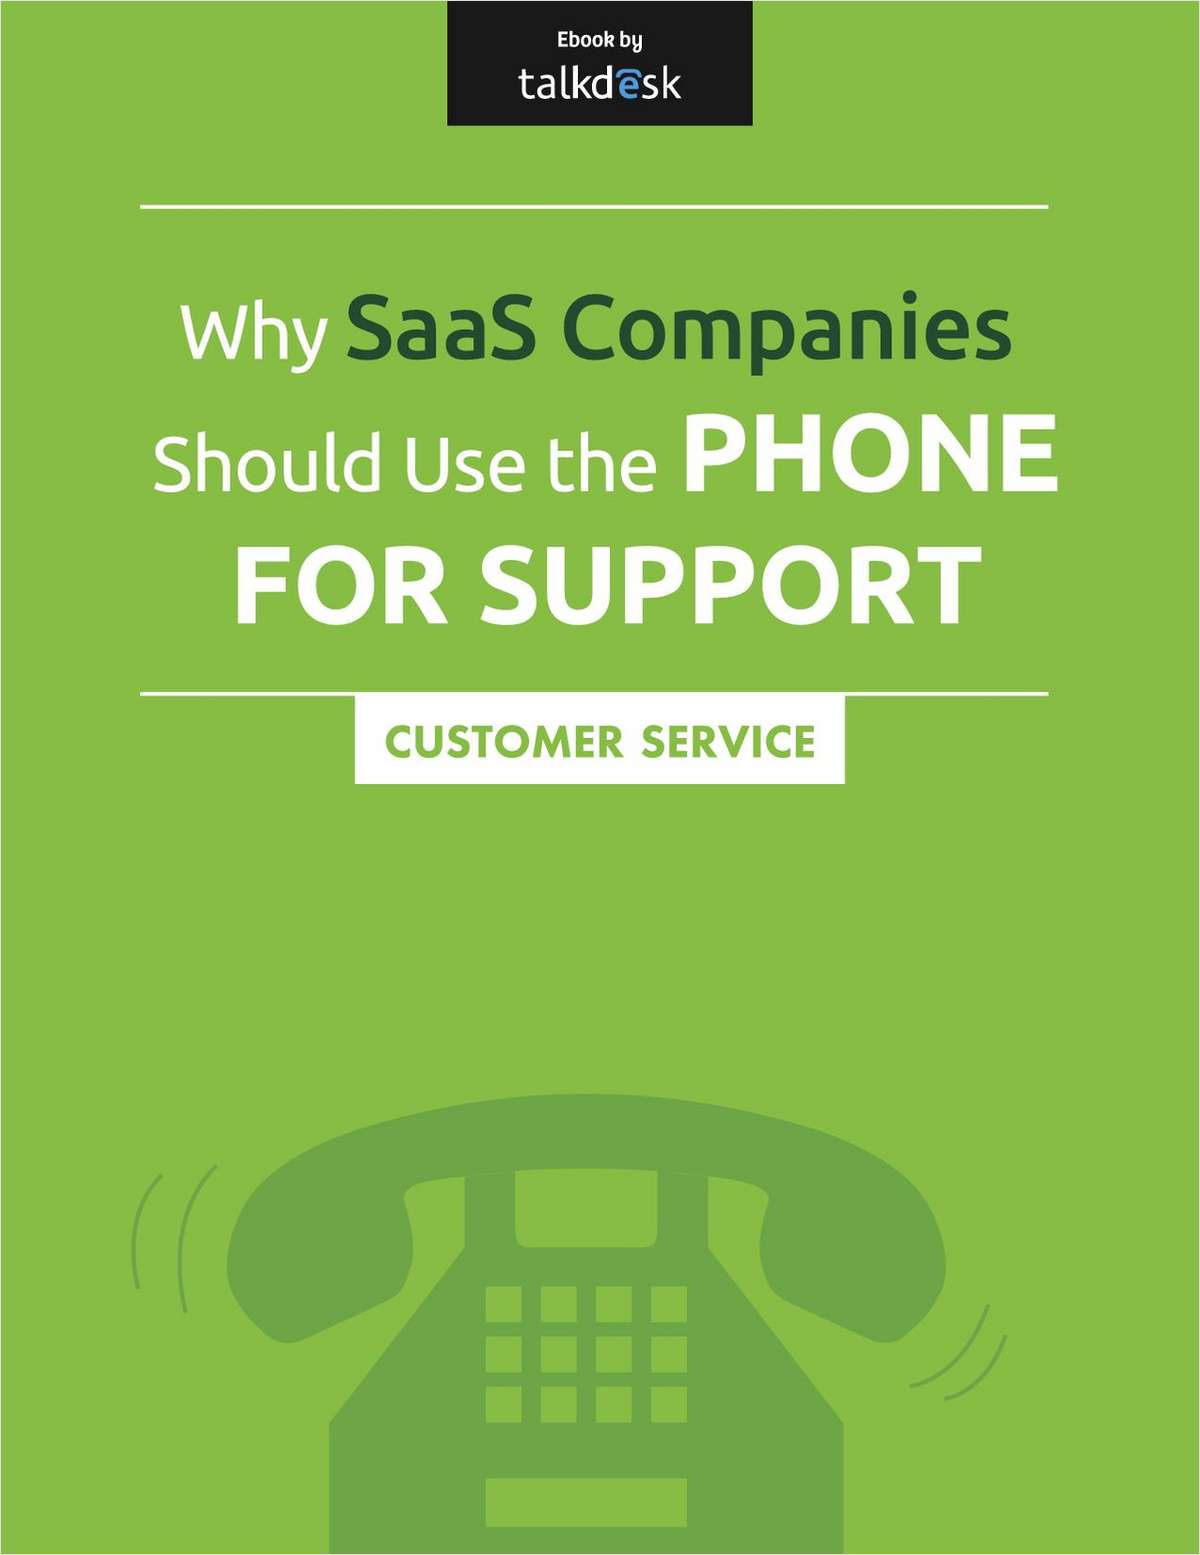 Why SaaS Companies Should Use the Phone for Support